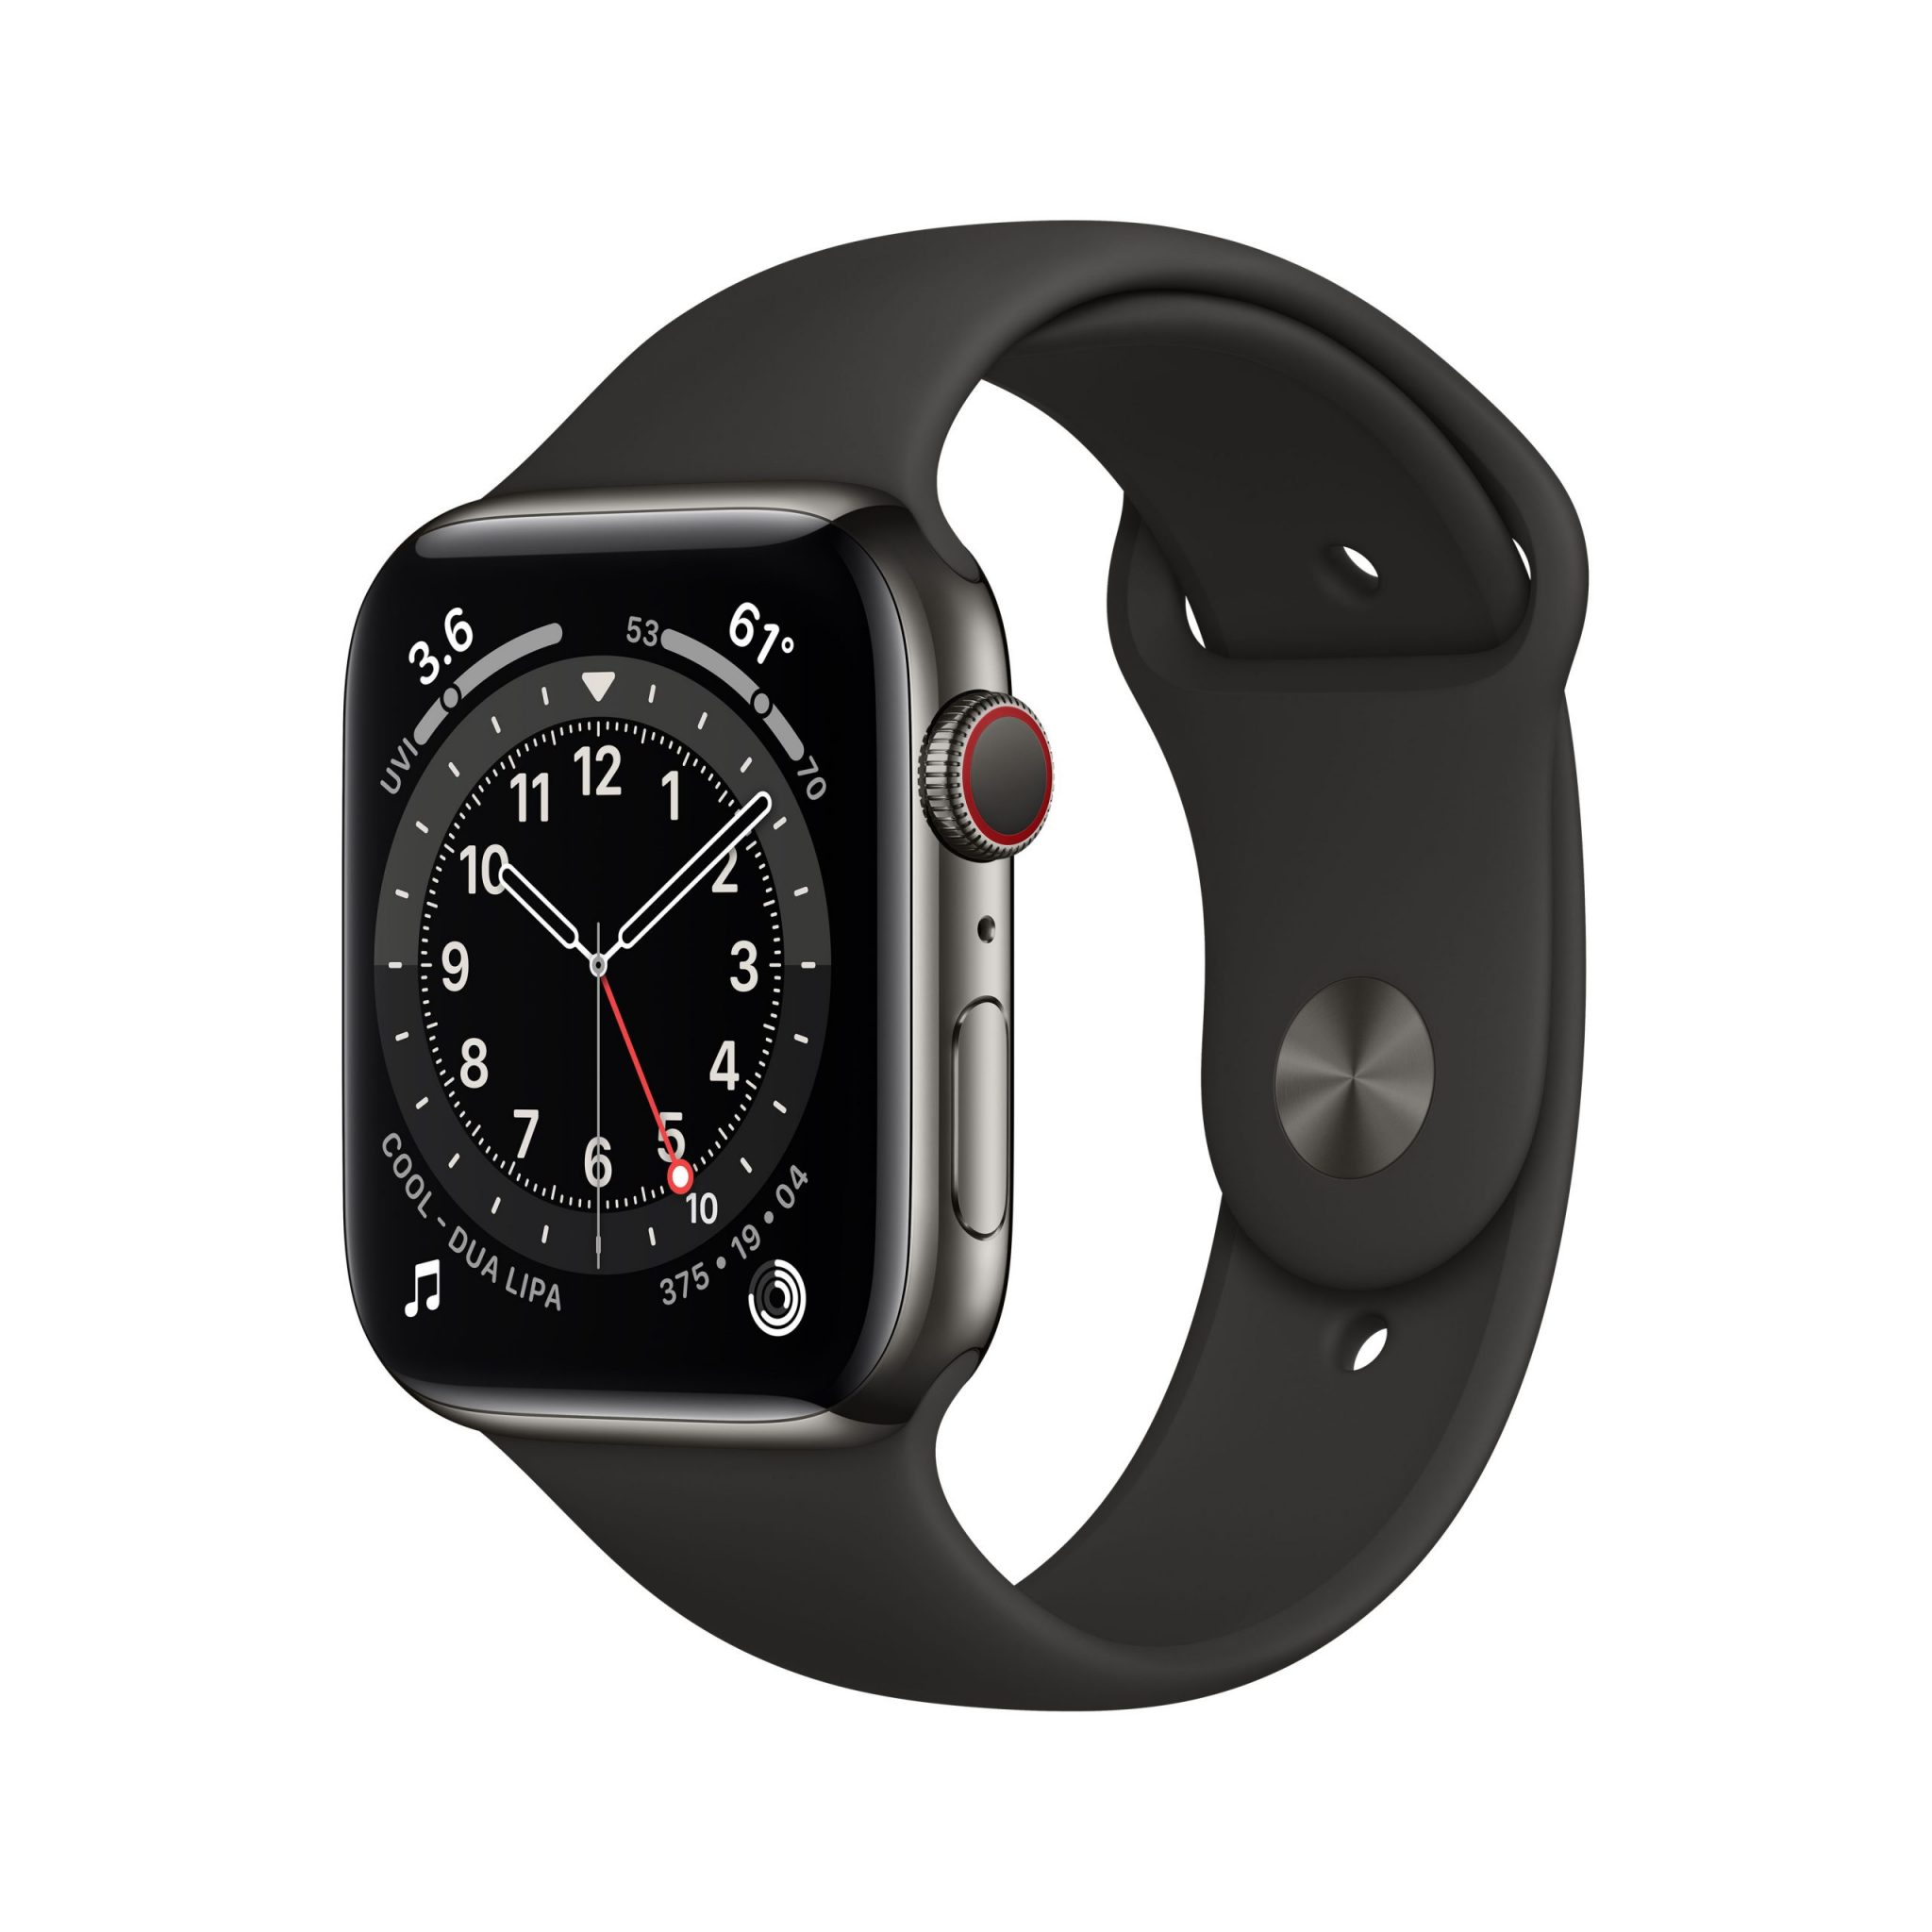 Apple_Watch_Series_6_LTE_44mm_Graphite_Stainless_Steel_Black_Sport_Band_PDP_Image_Position-1__WWEN (1)